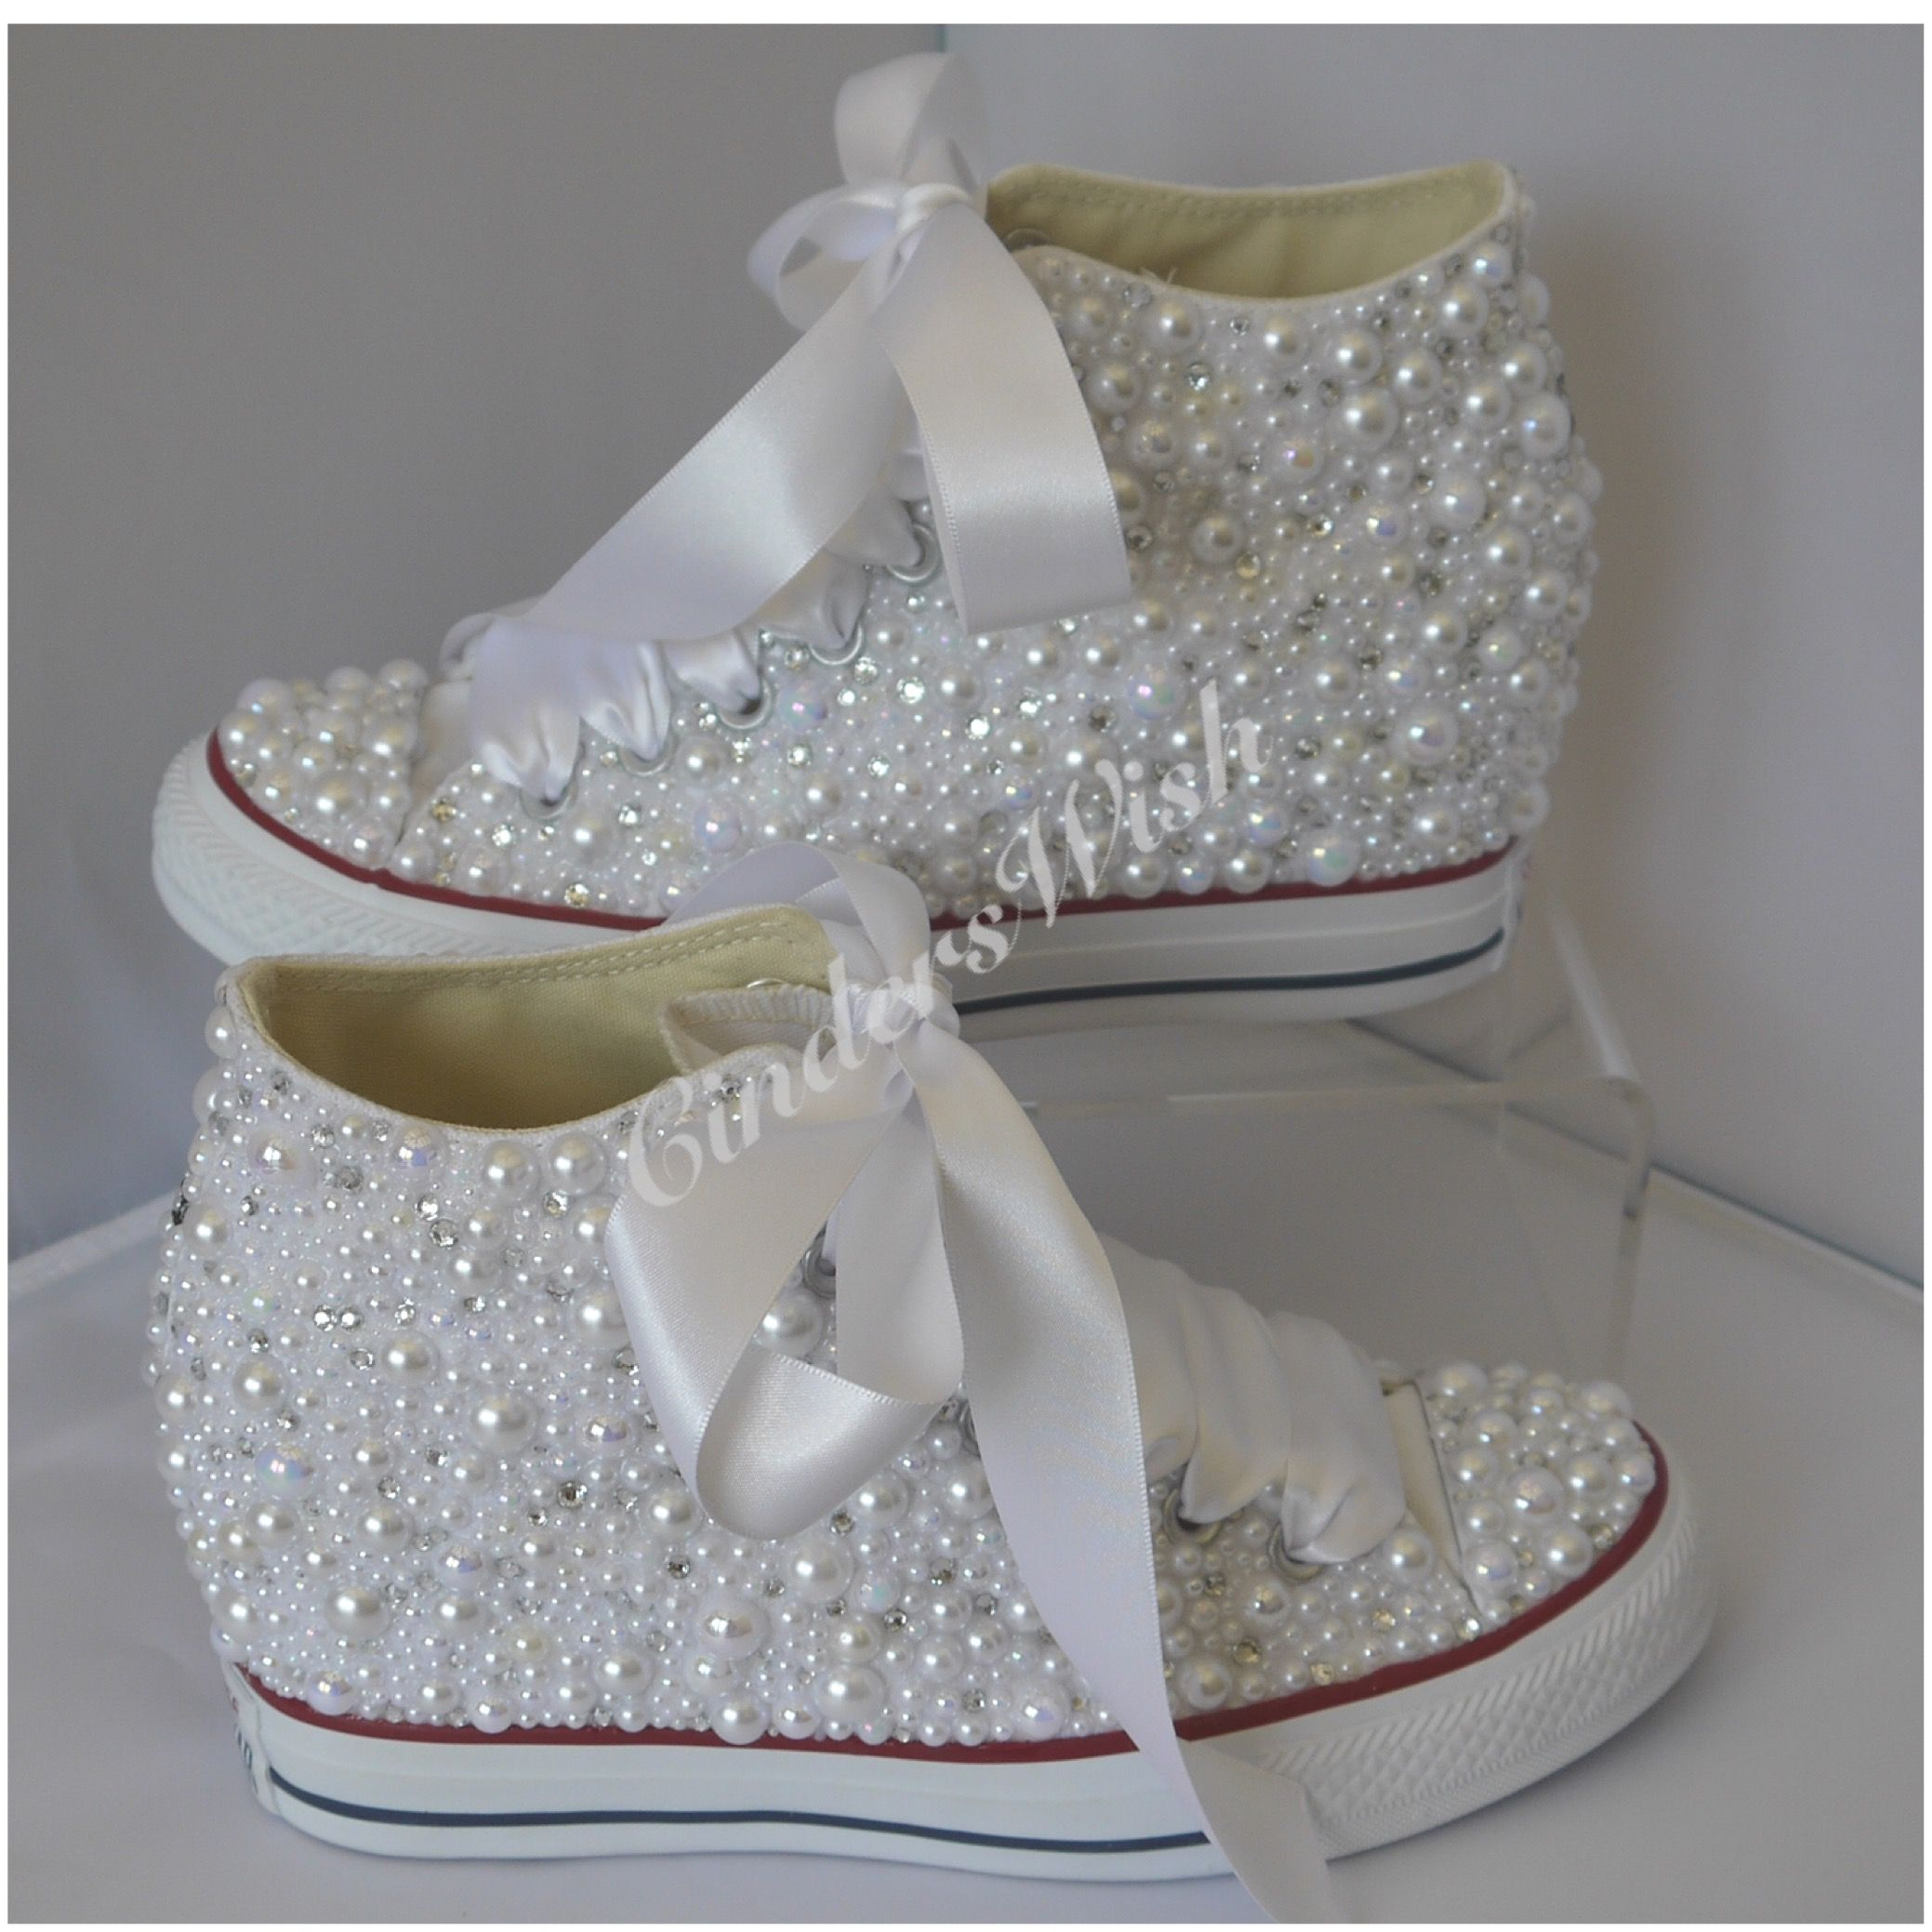 Beautiful Wedge Pearl Wedding Converse. All over pearls converse   wedding  converse    wedge  vintage  pearls  personalised  weddingshoes  oneofakind  ... 21234cb8c